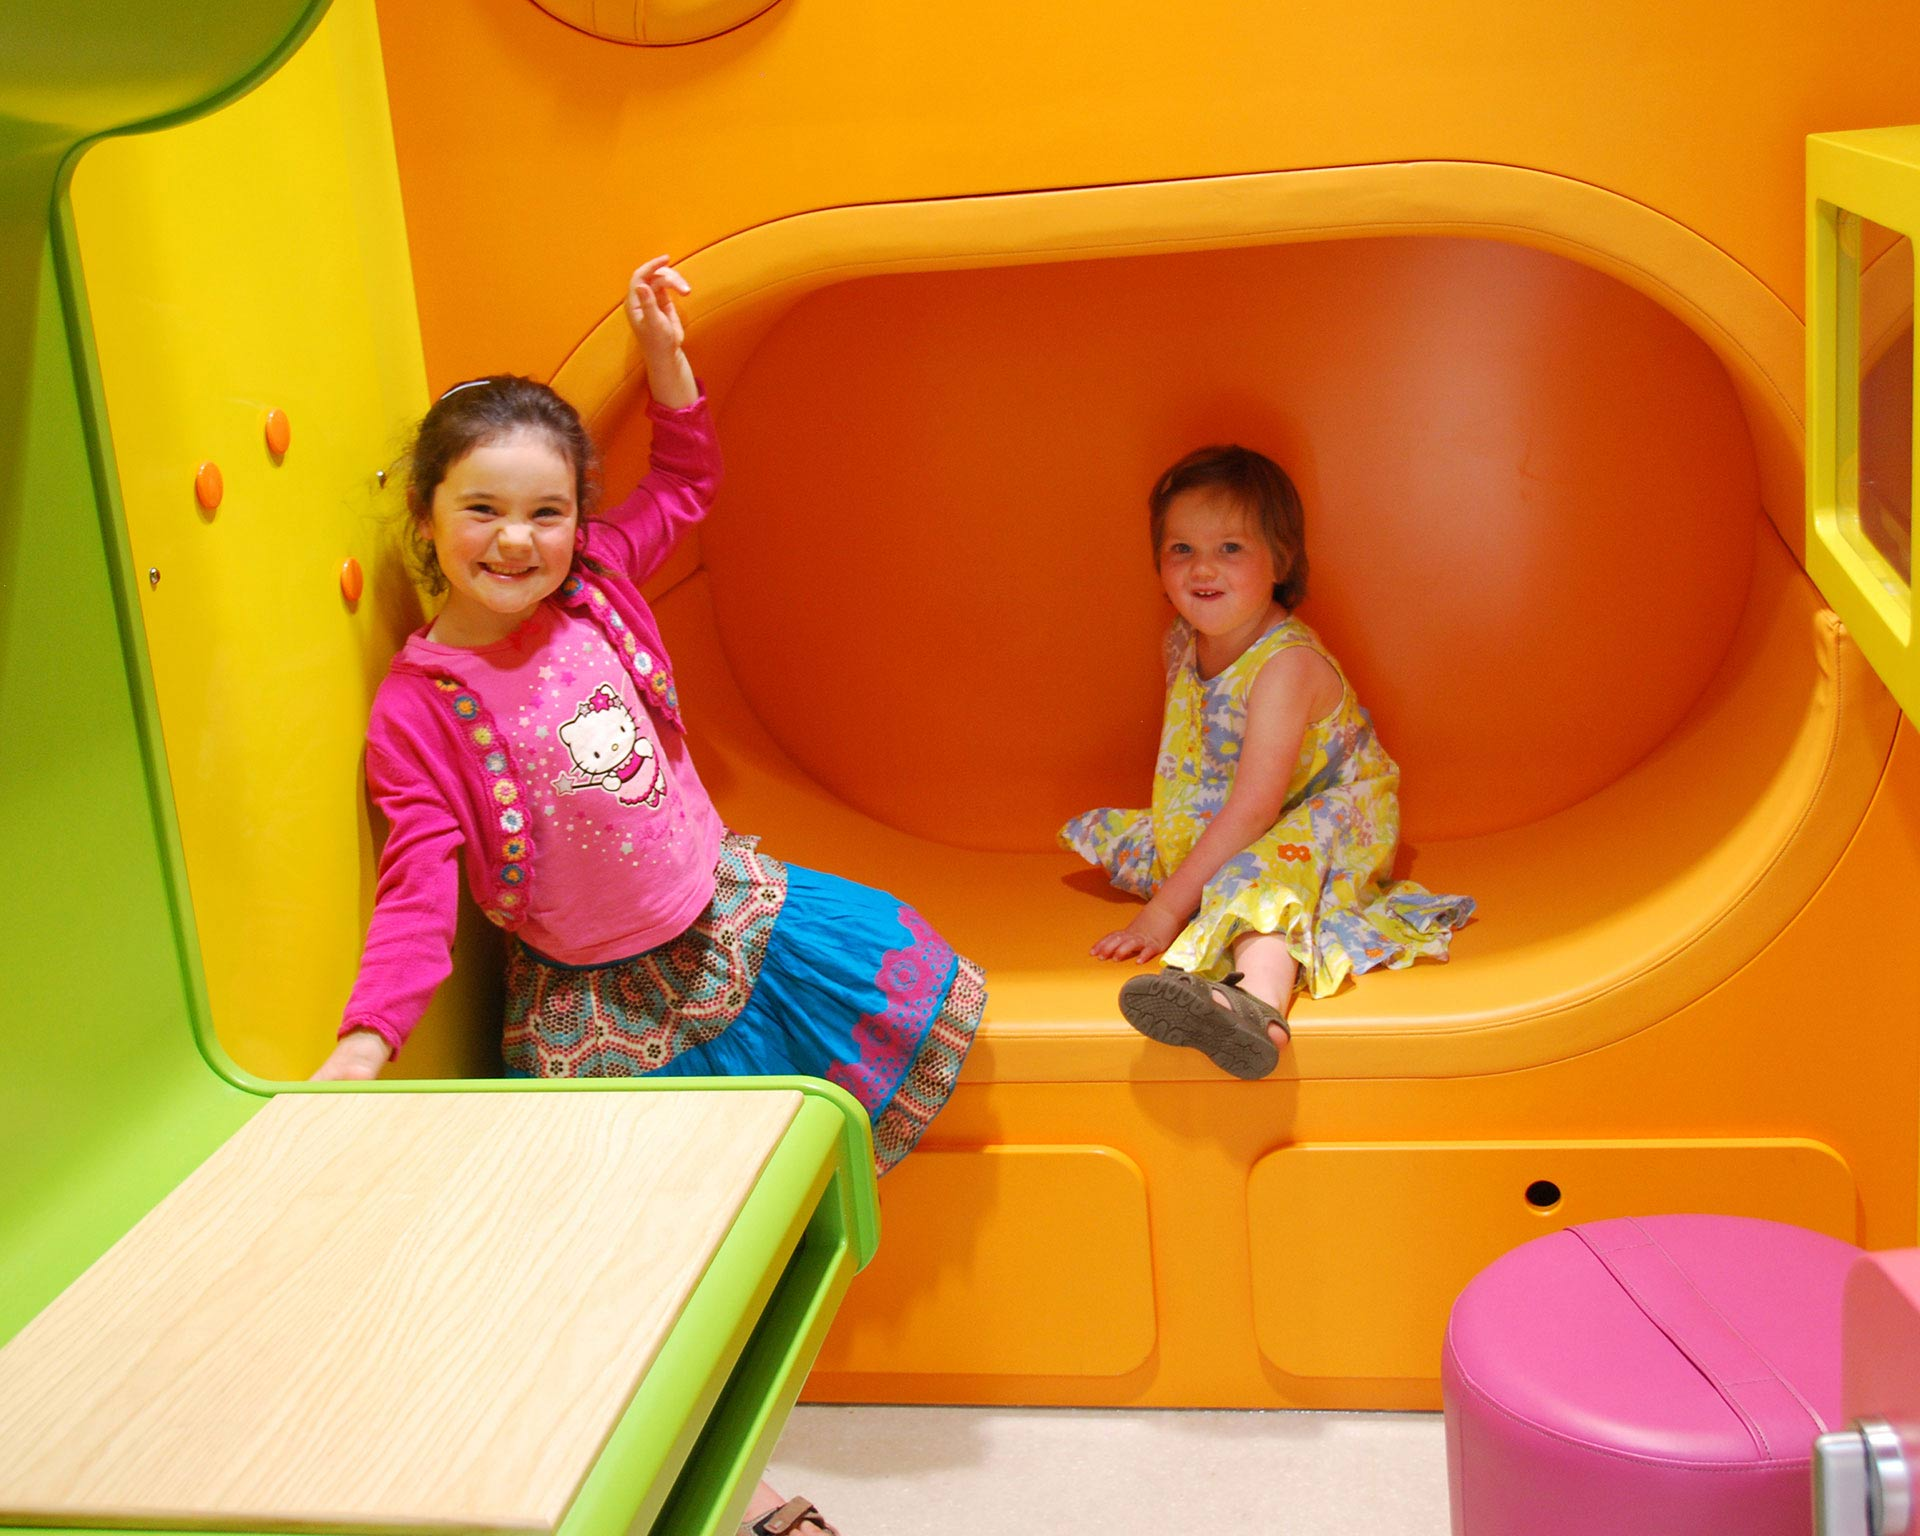 Appropriate materials used to ensure safe play for children at NHS hopsital